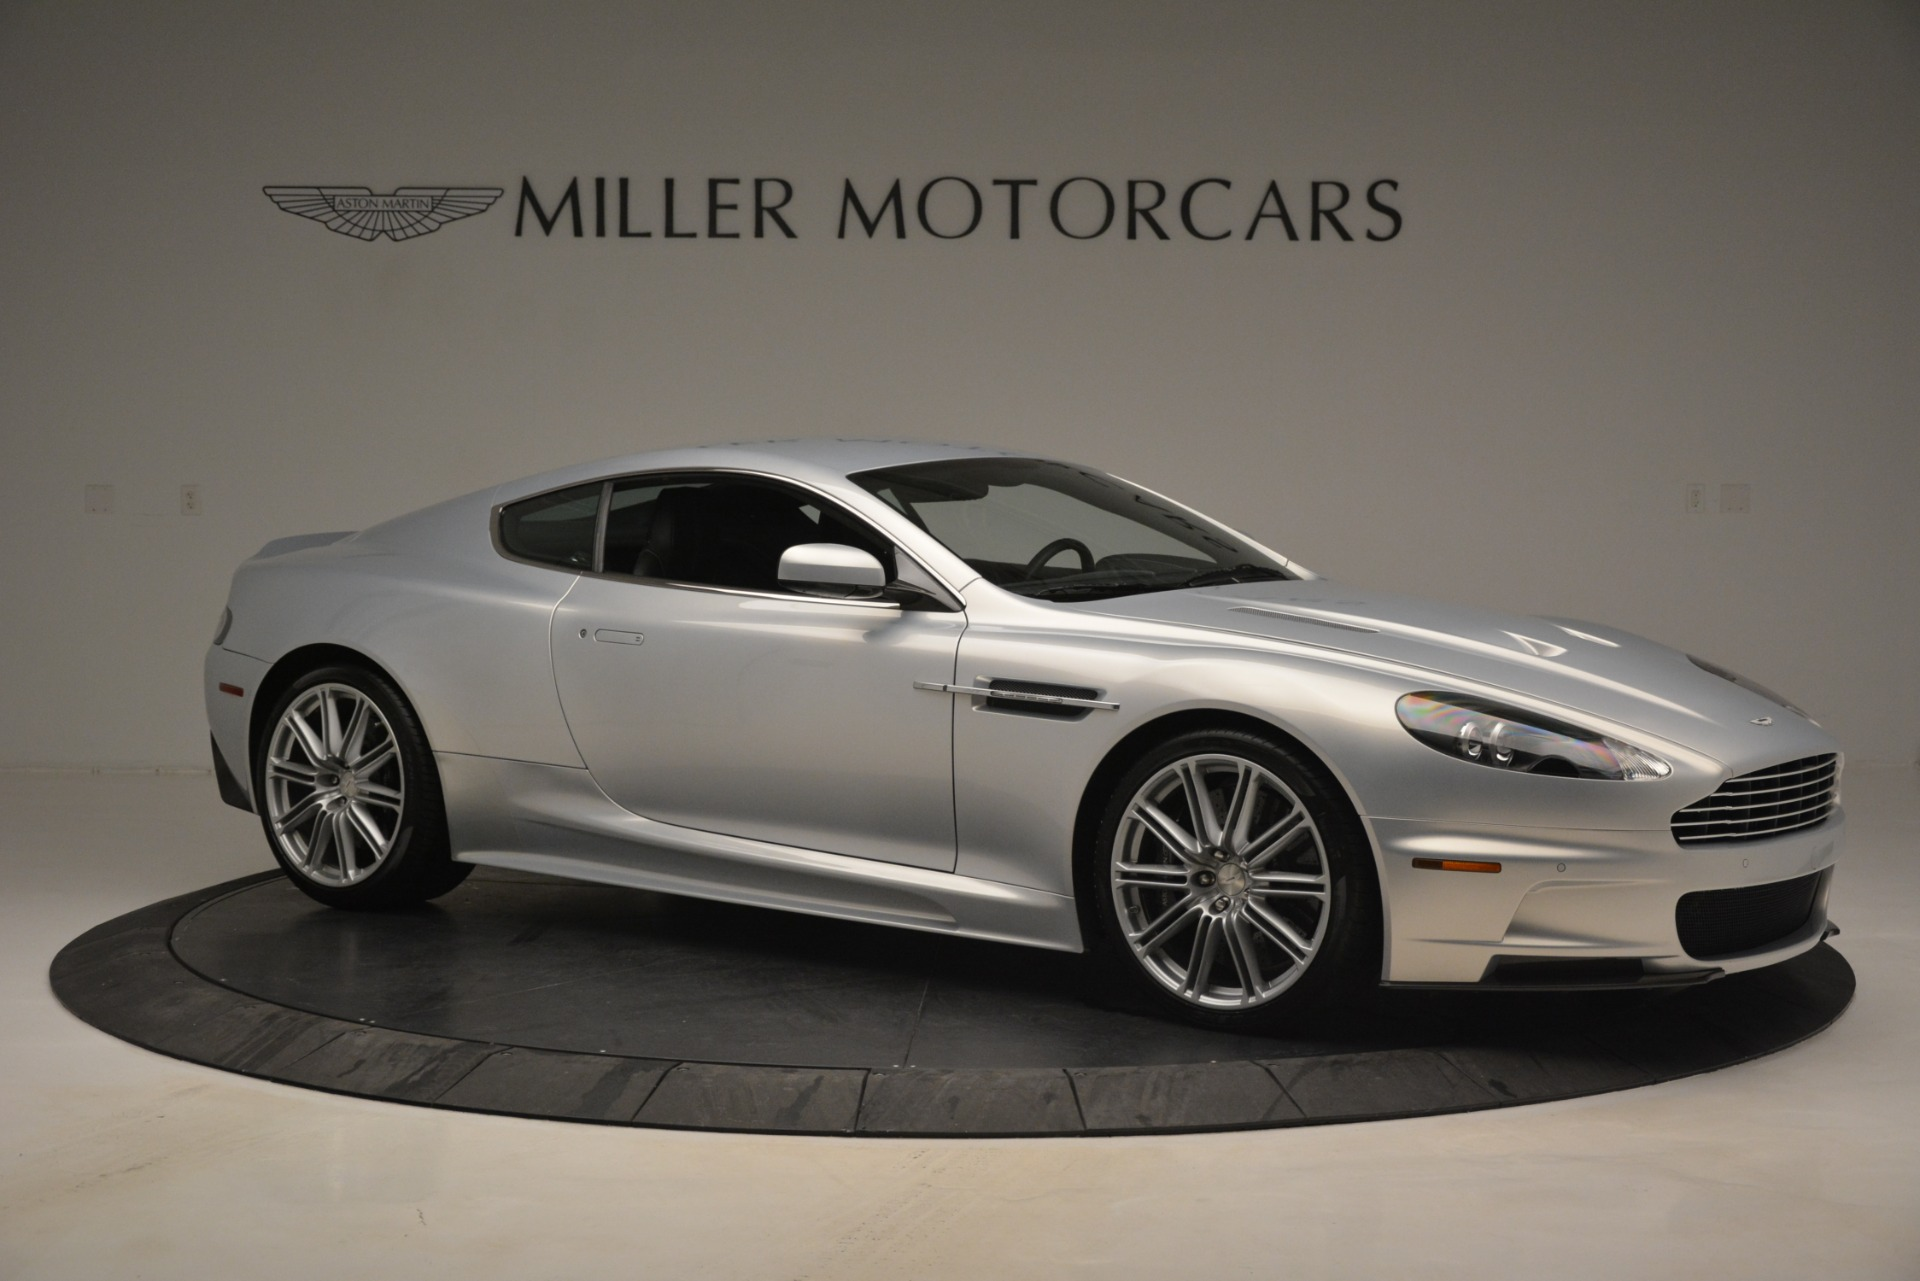 Used 2009 Aston Martin DBS  For Sale In Westport, CT 3033_p10